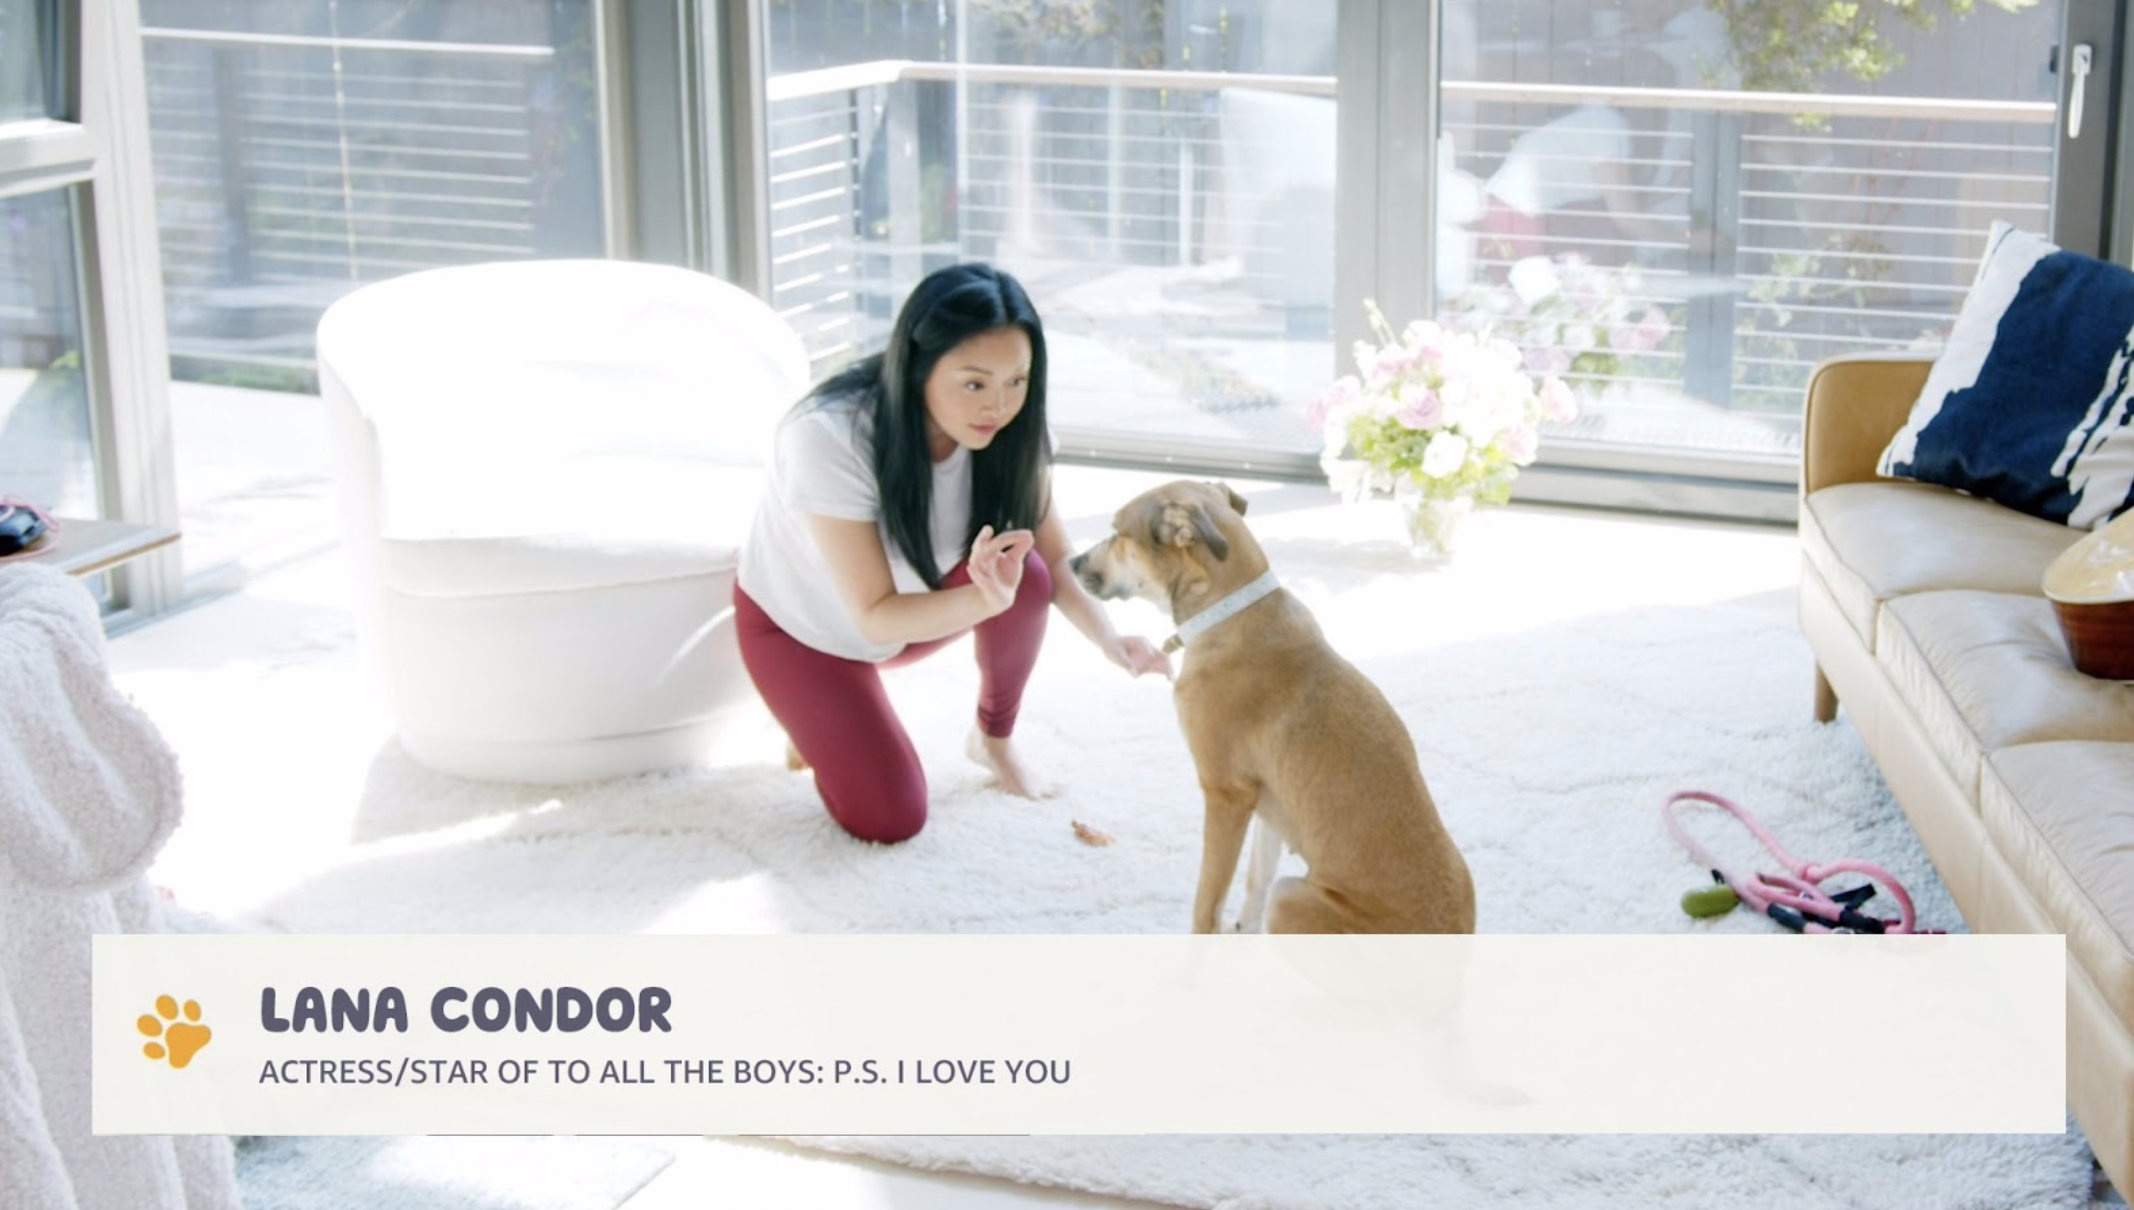 lana condor doing virtual dog training in experiential marketing los angeles